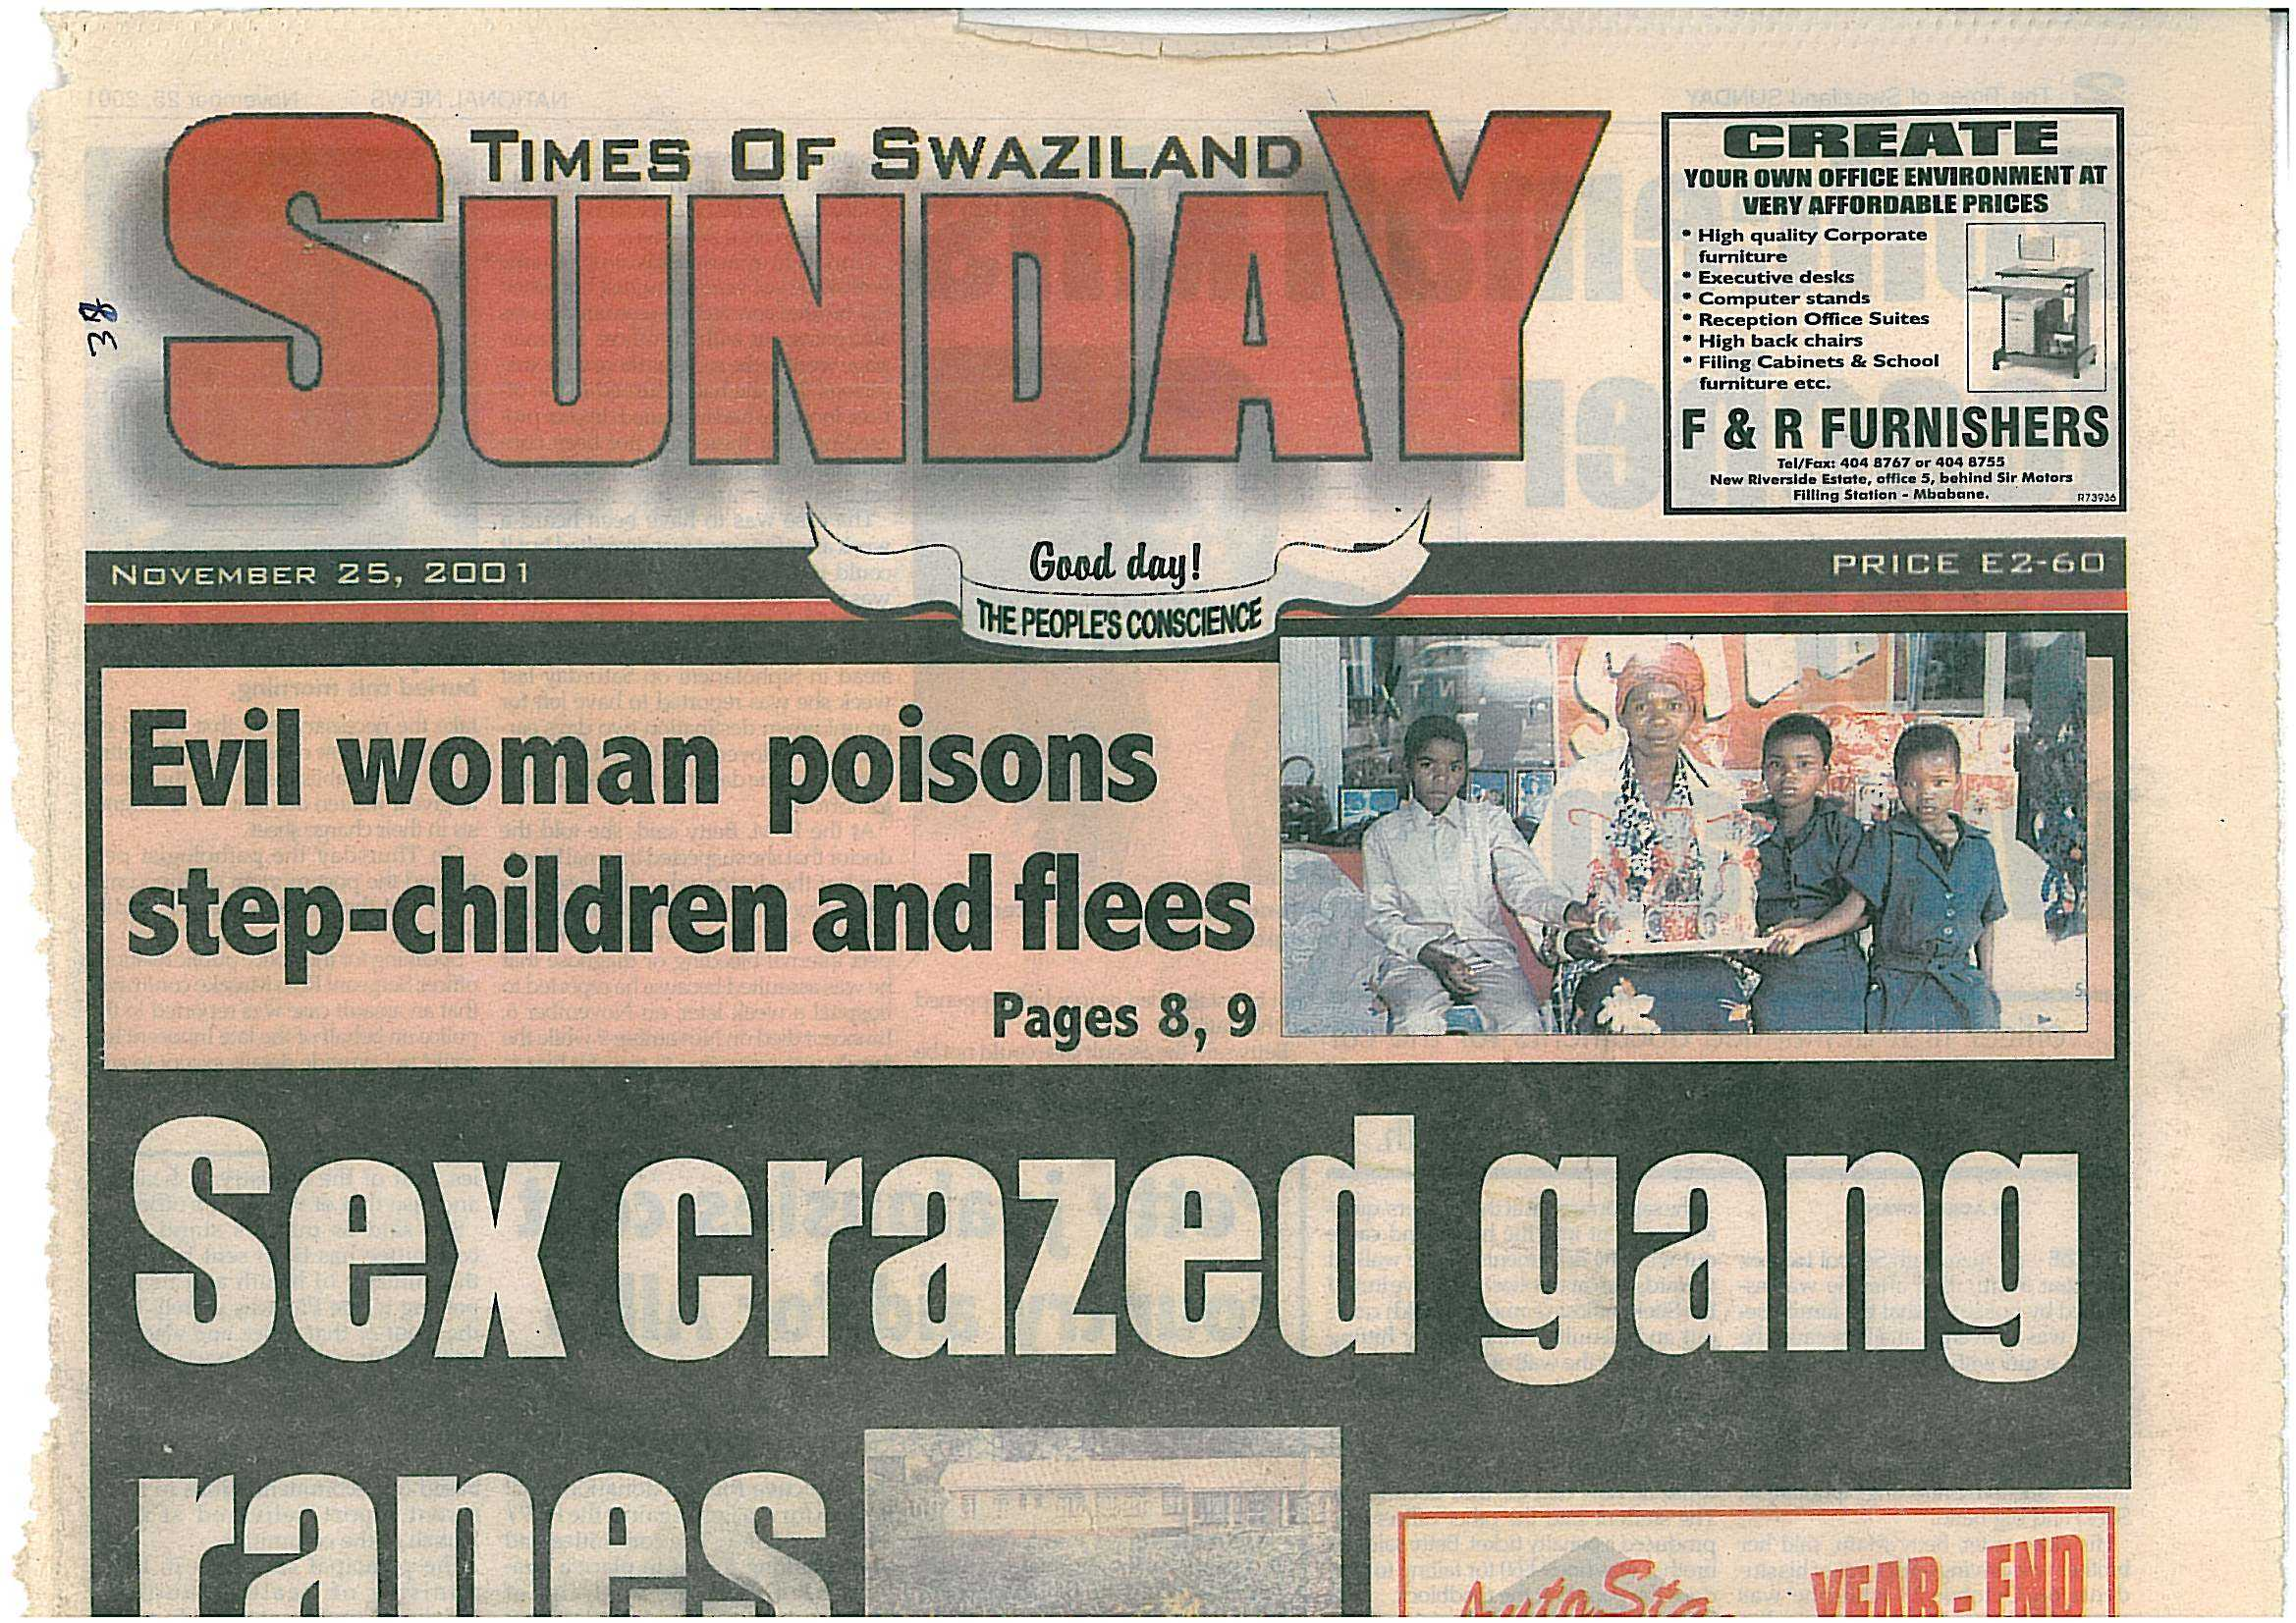 swaziland newspaper of Times